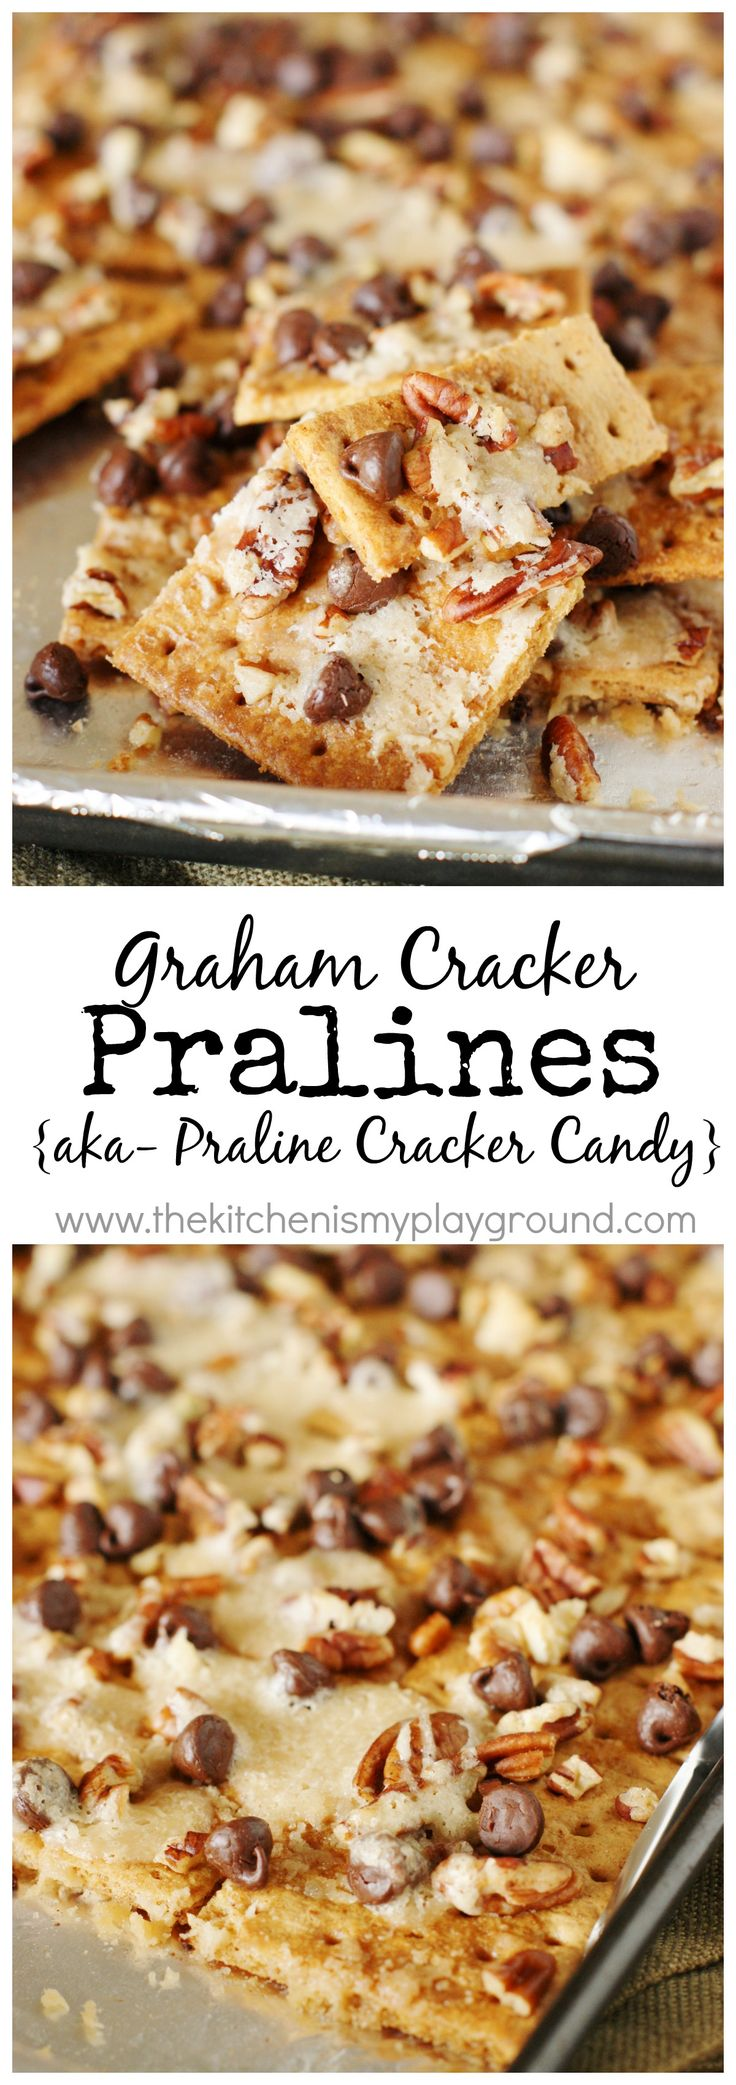 Graham Cracker Pralines ~ a quick and easy totally delicious, totally addictive cracker candy treat.   www.thekitchenismyplayground.com